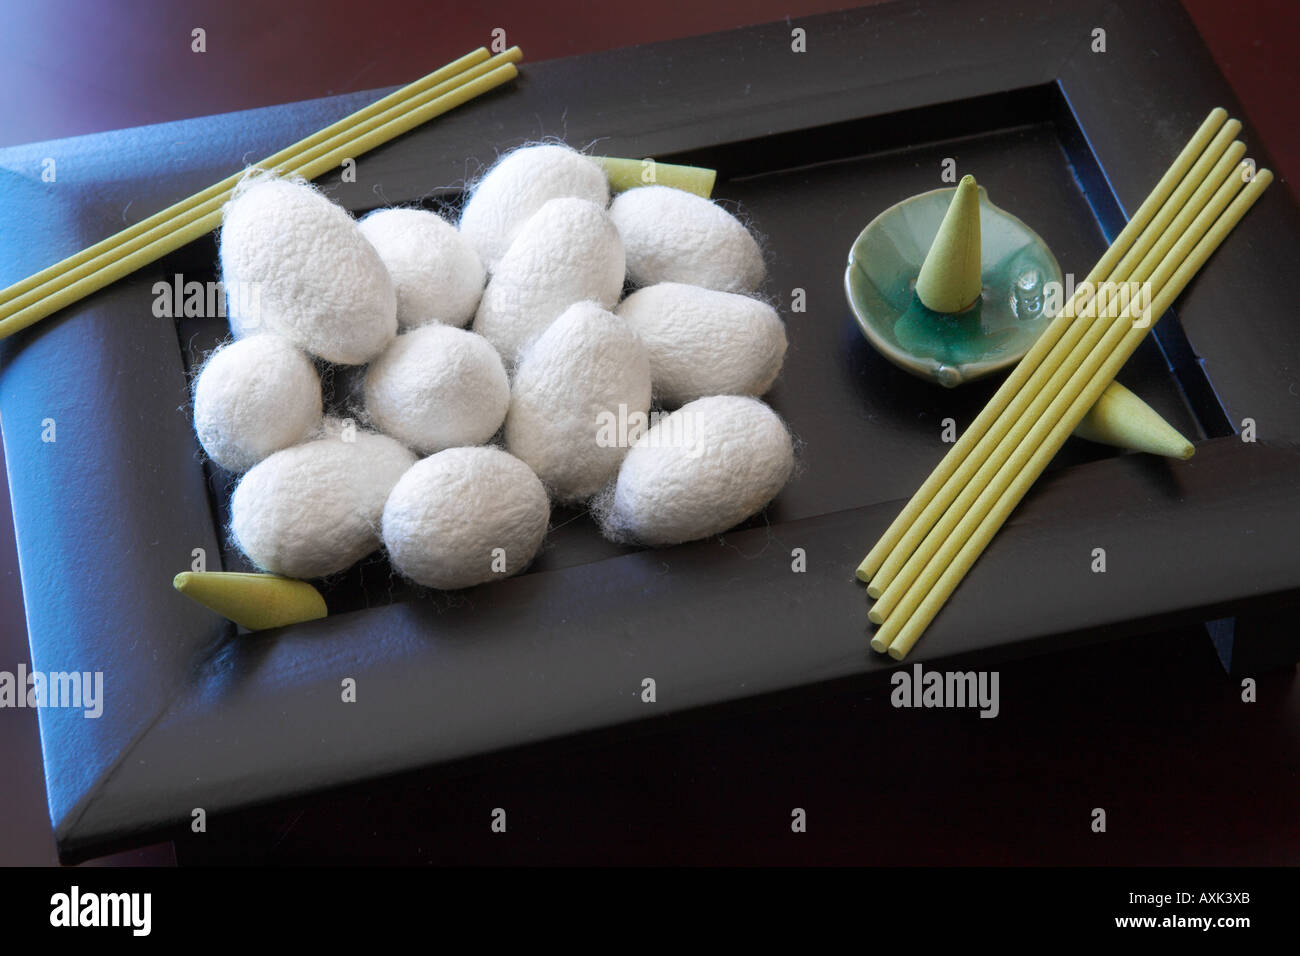 silk worm cocoon white green gormet food foreign white fuzz puff stick wood dish tray plate low stand eat consumption - Stock Image